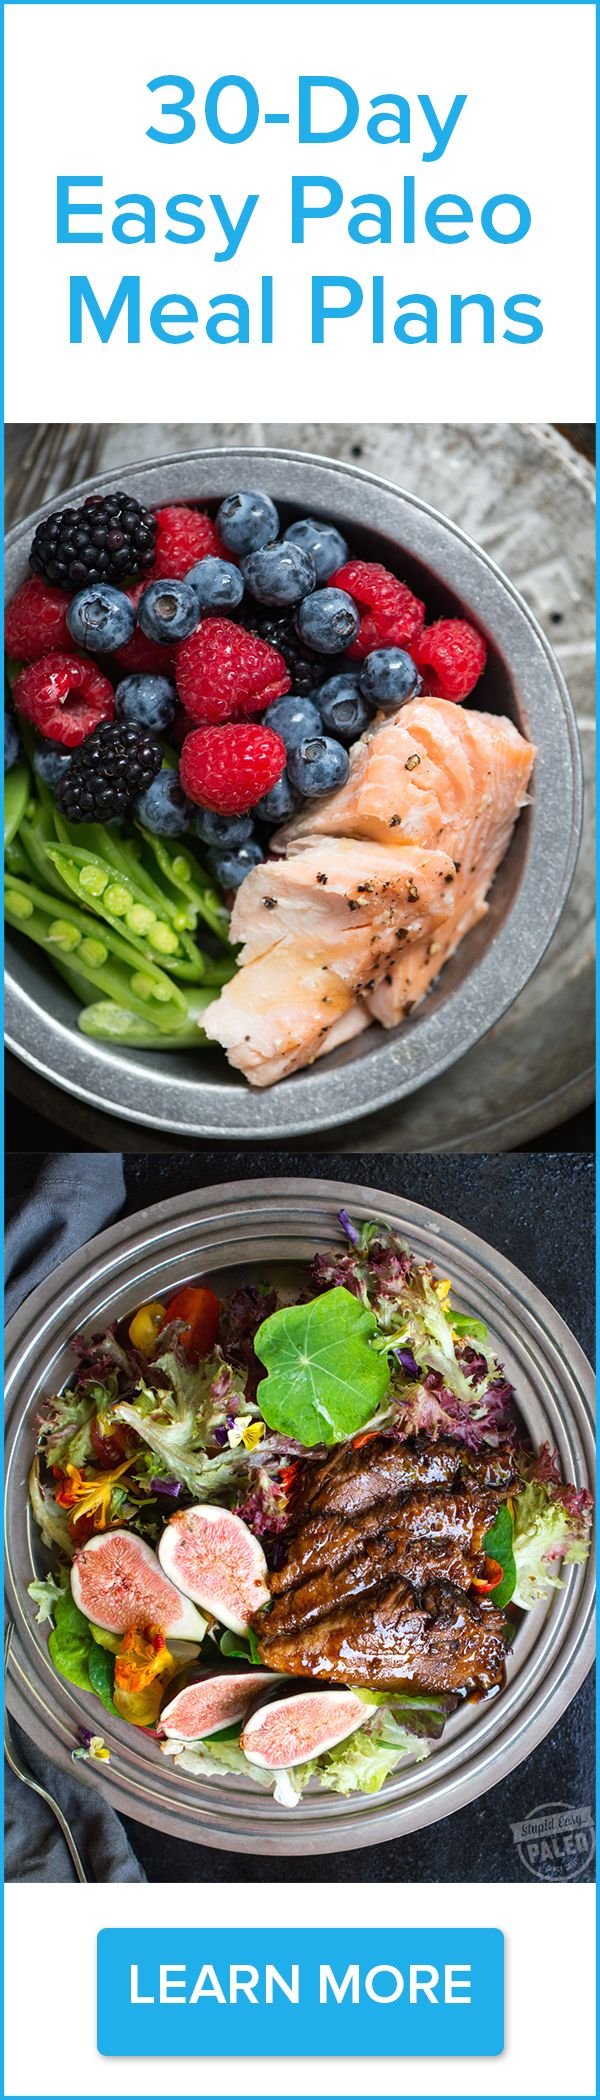 Click here to learn more about 30-Day Easy Paleo Meal Plans from trusted paleo nutritionist Steph Gaudreau of Stupid Easy Paleo http://stupideasypaleo.com/meal-plans. Save up to 10 hours a week in cooking time, and savor delicious paleo food so you can look, feel and perform better.